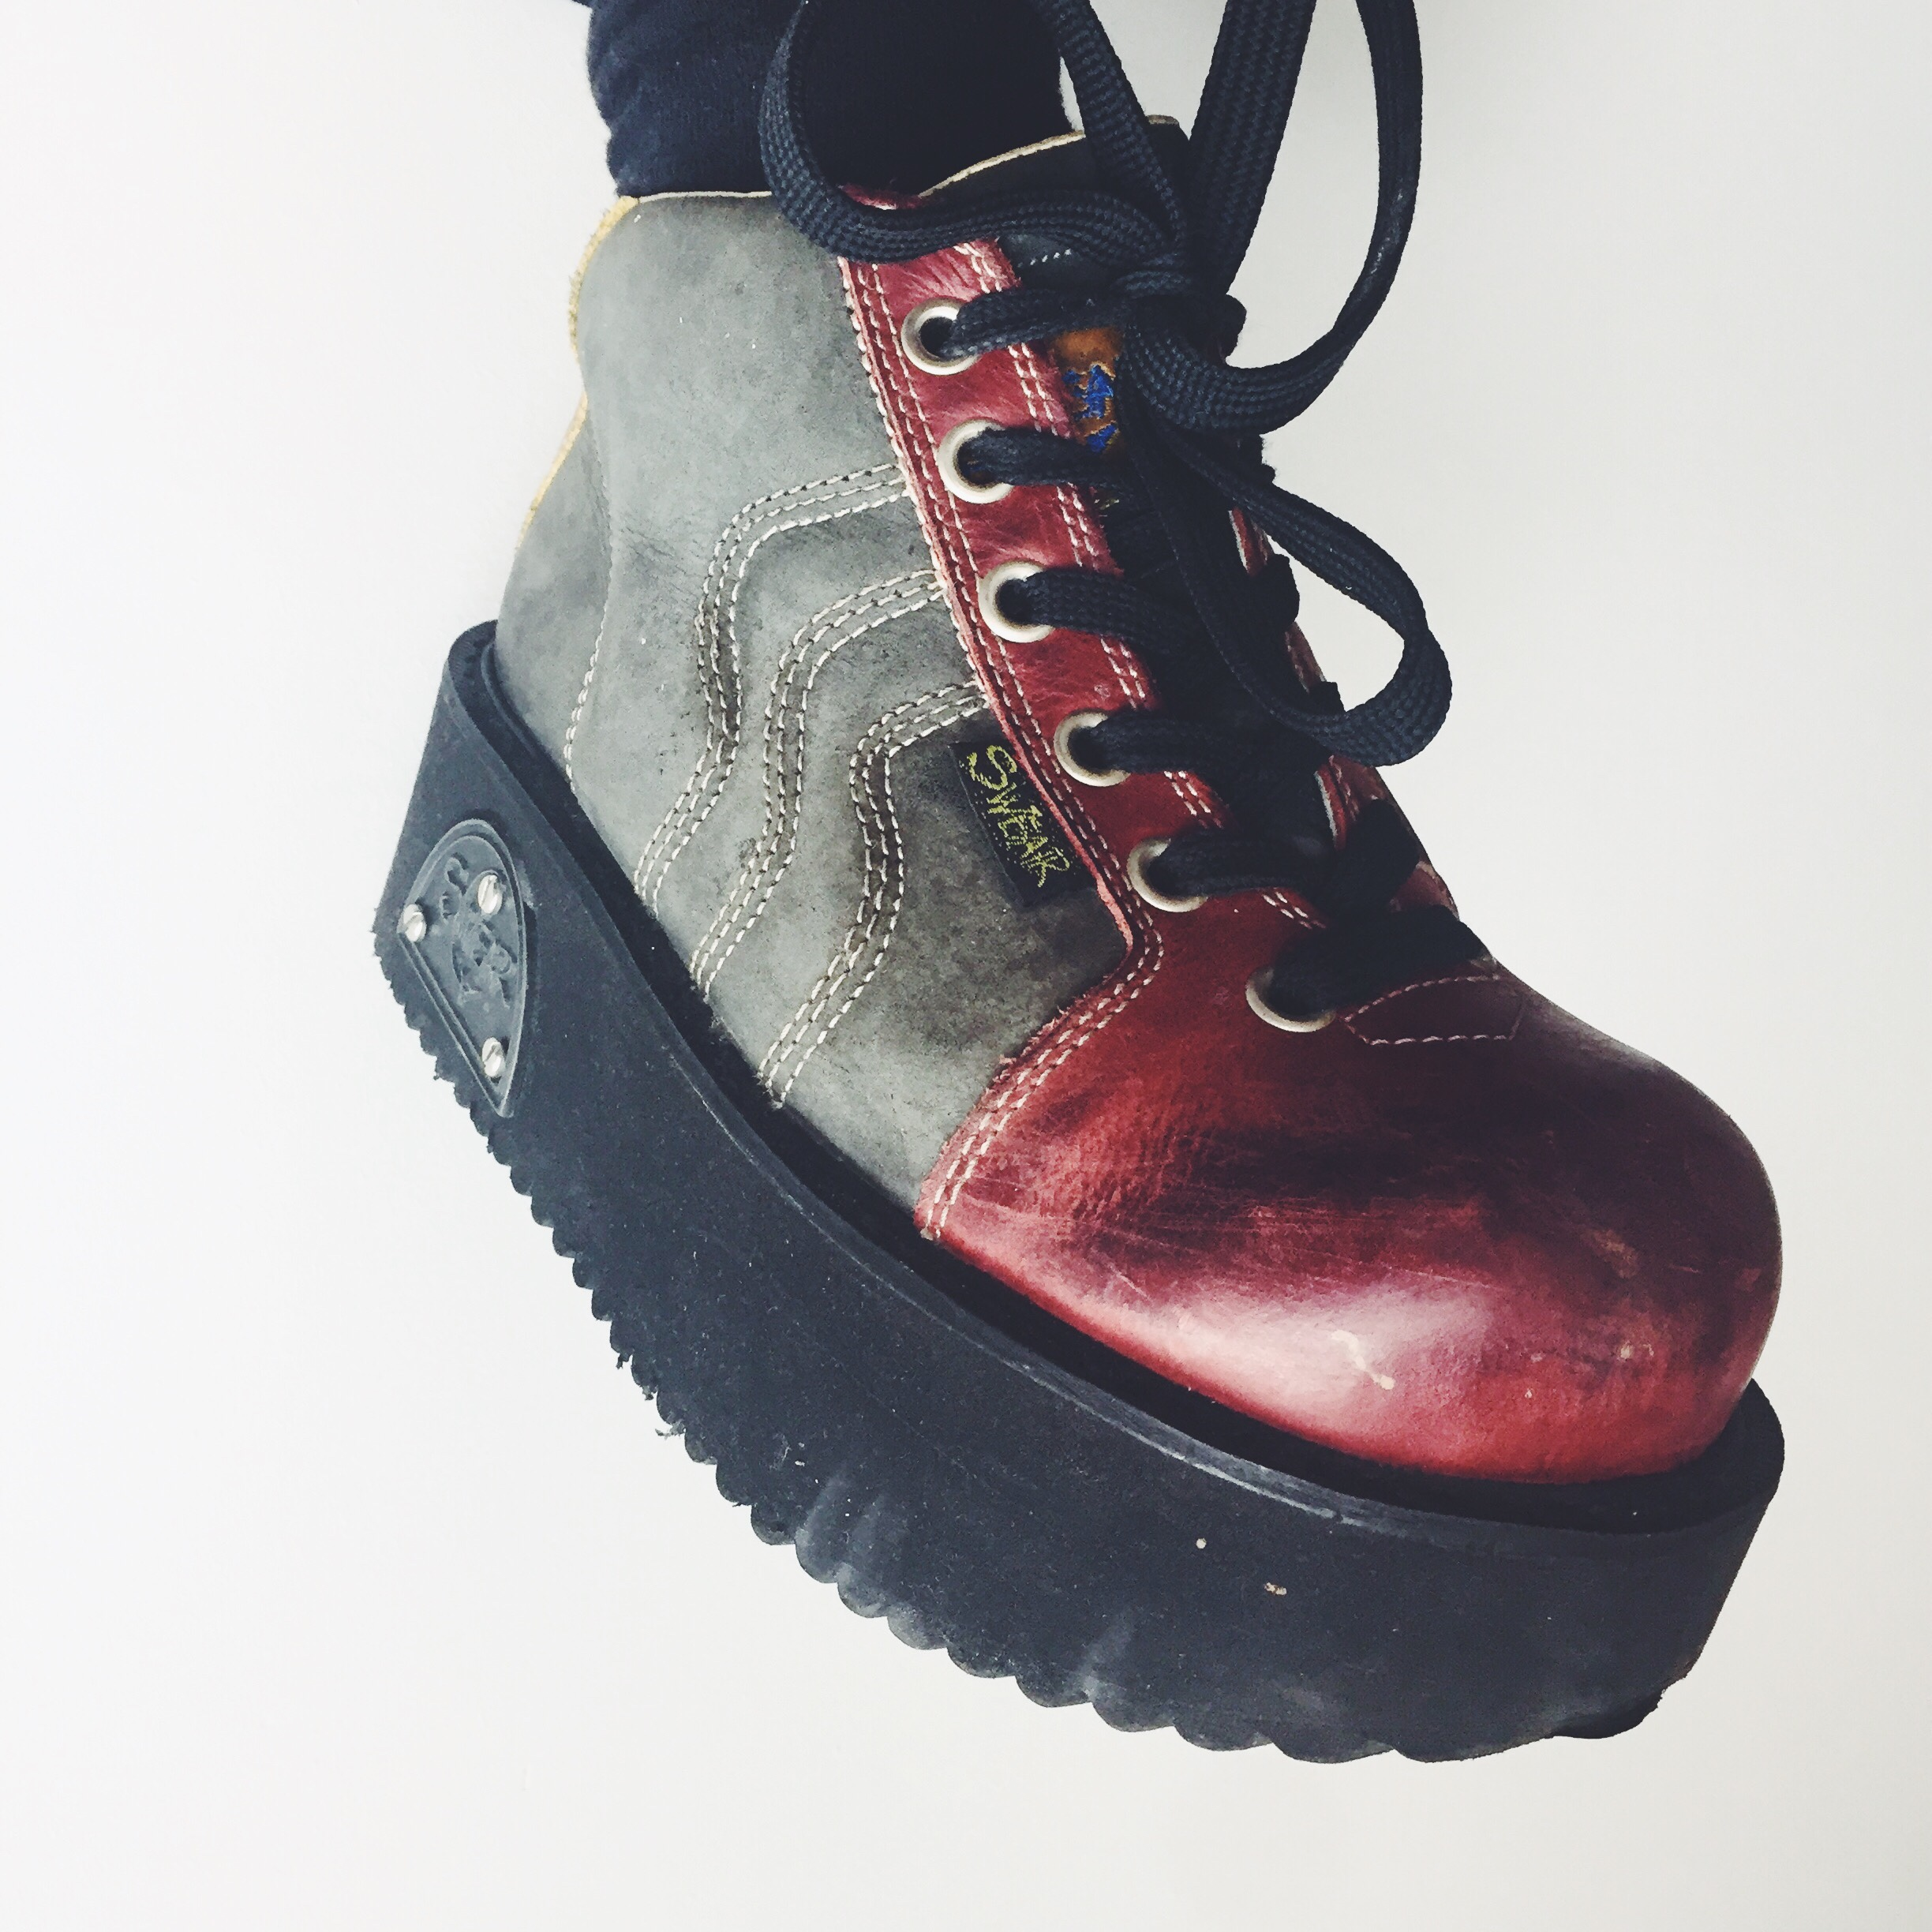 I'm selling the coolest shoes on earth